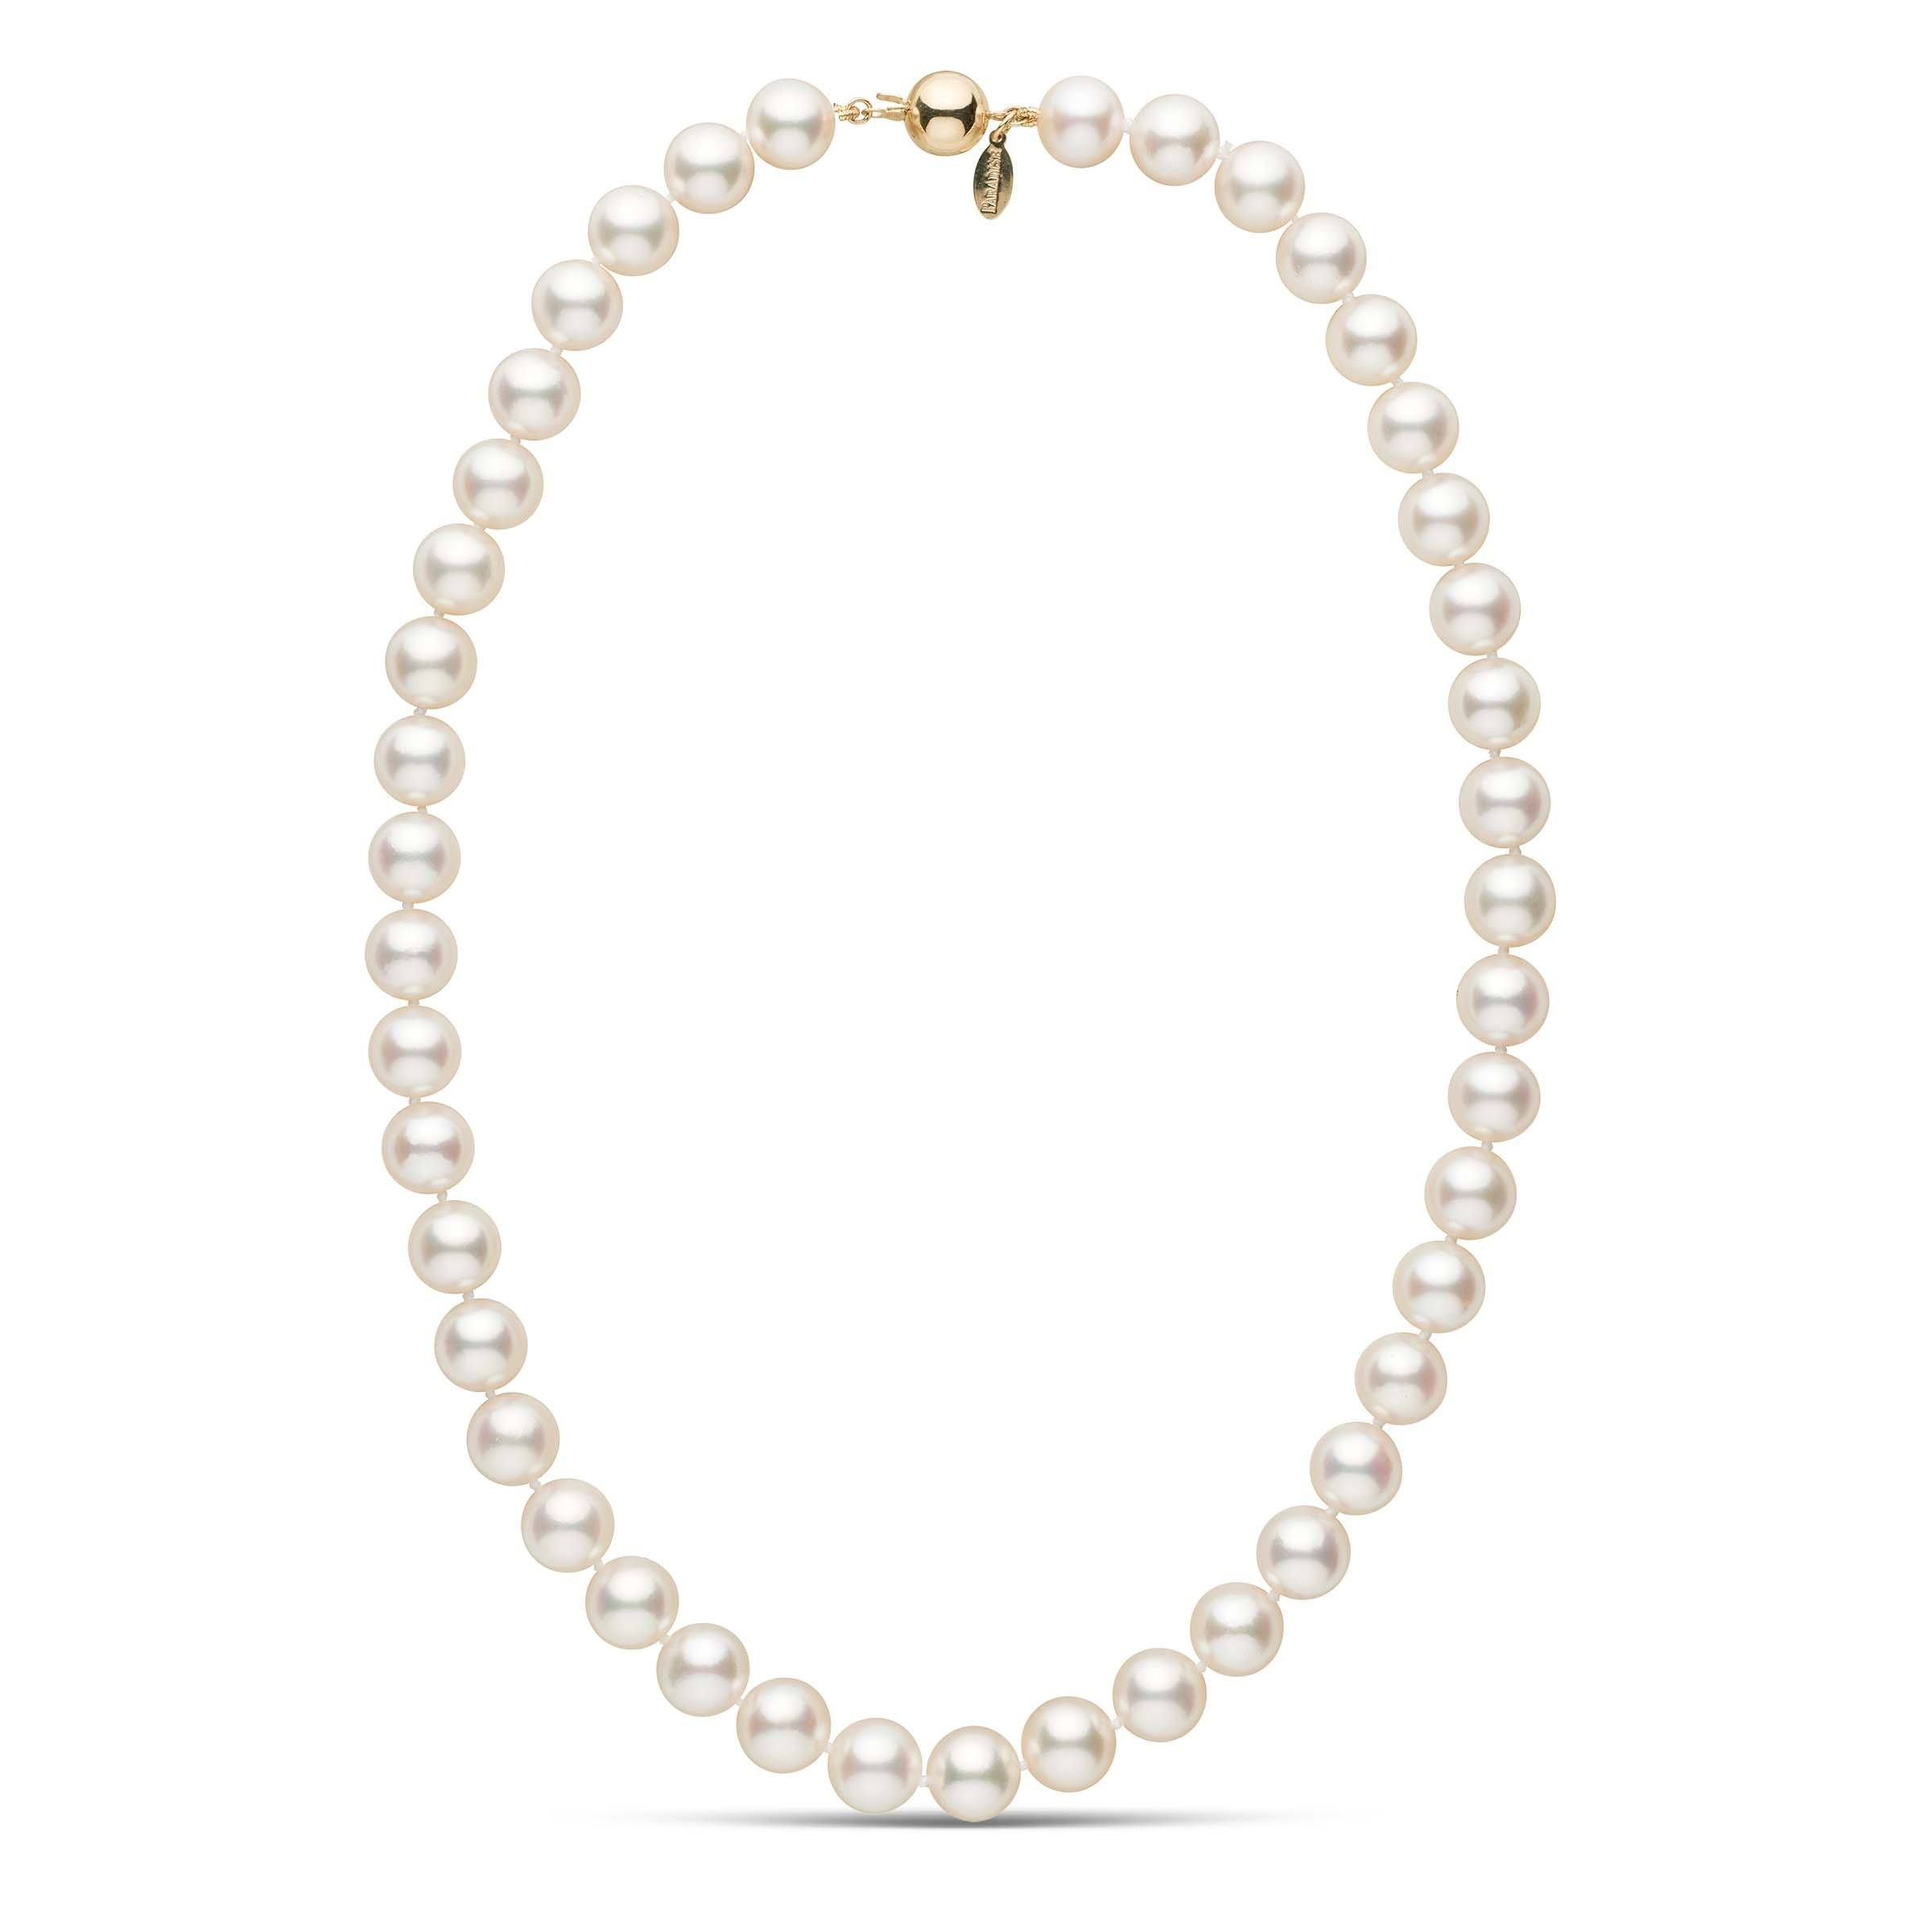 9.5-10.0 mm 18-inch White Hanadama Akoya Pearl Necklace